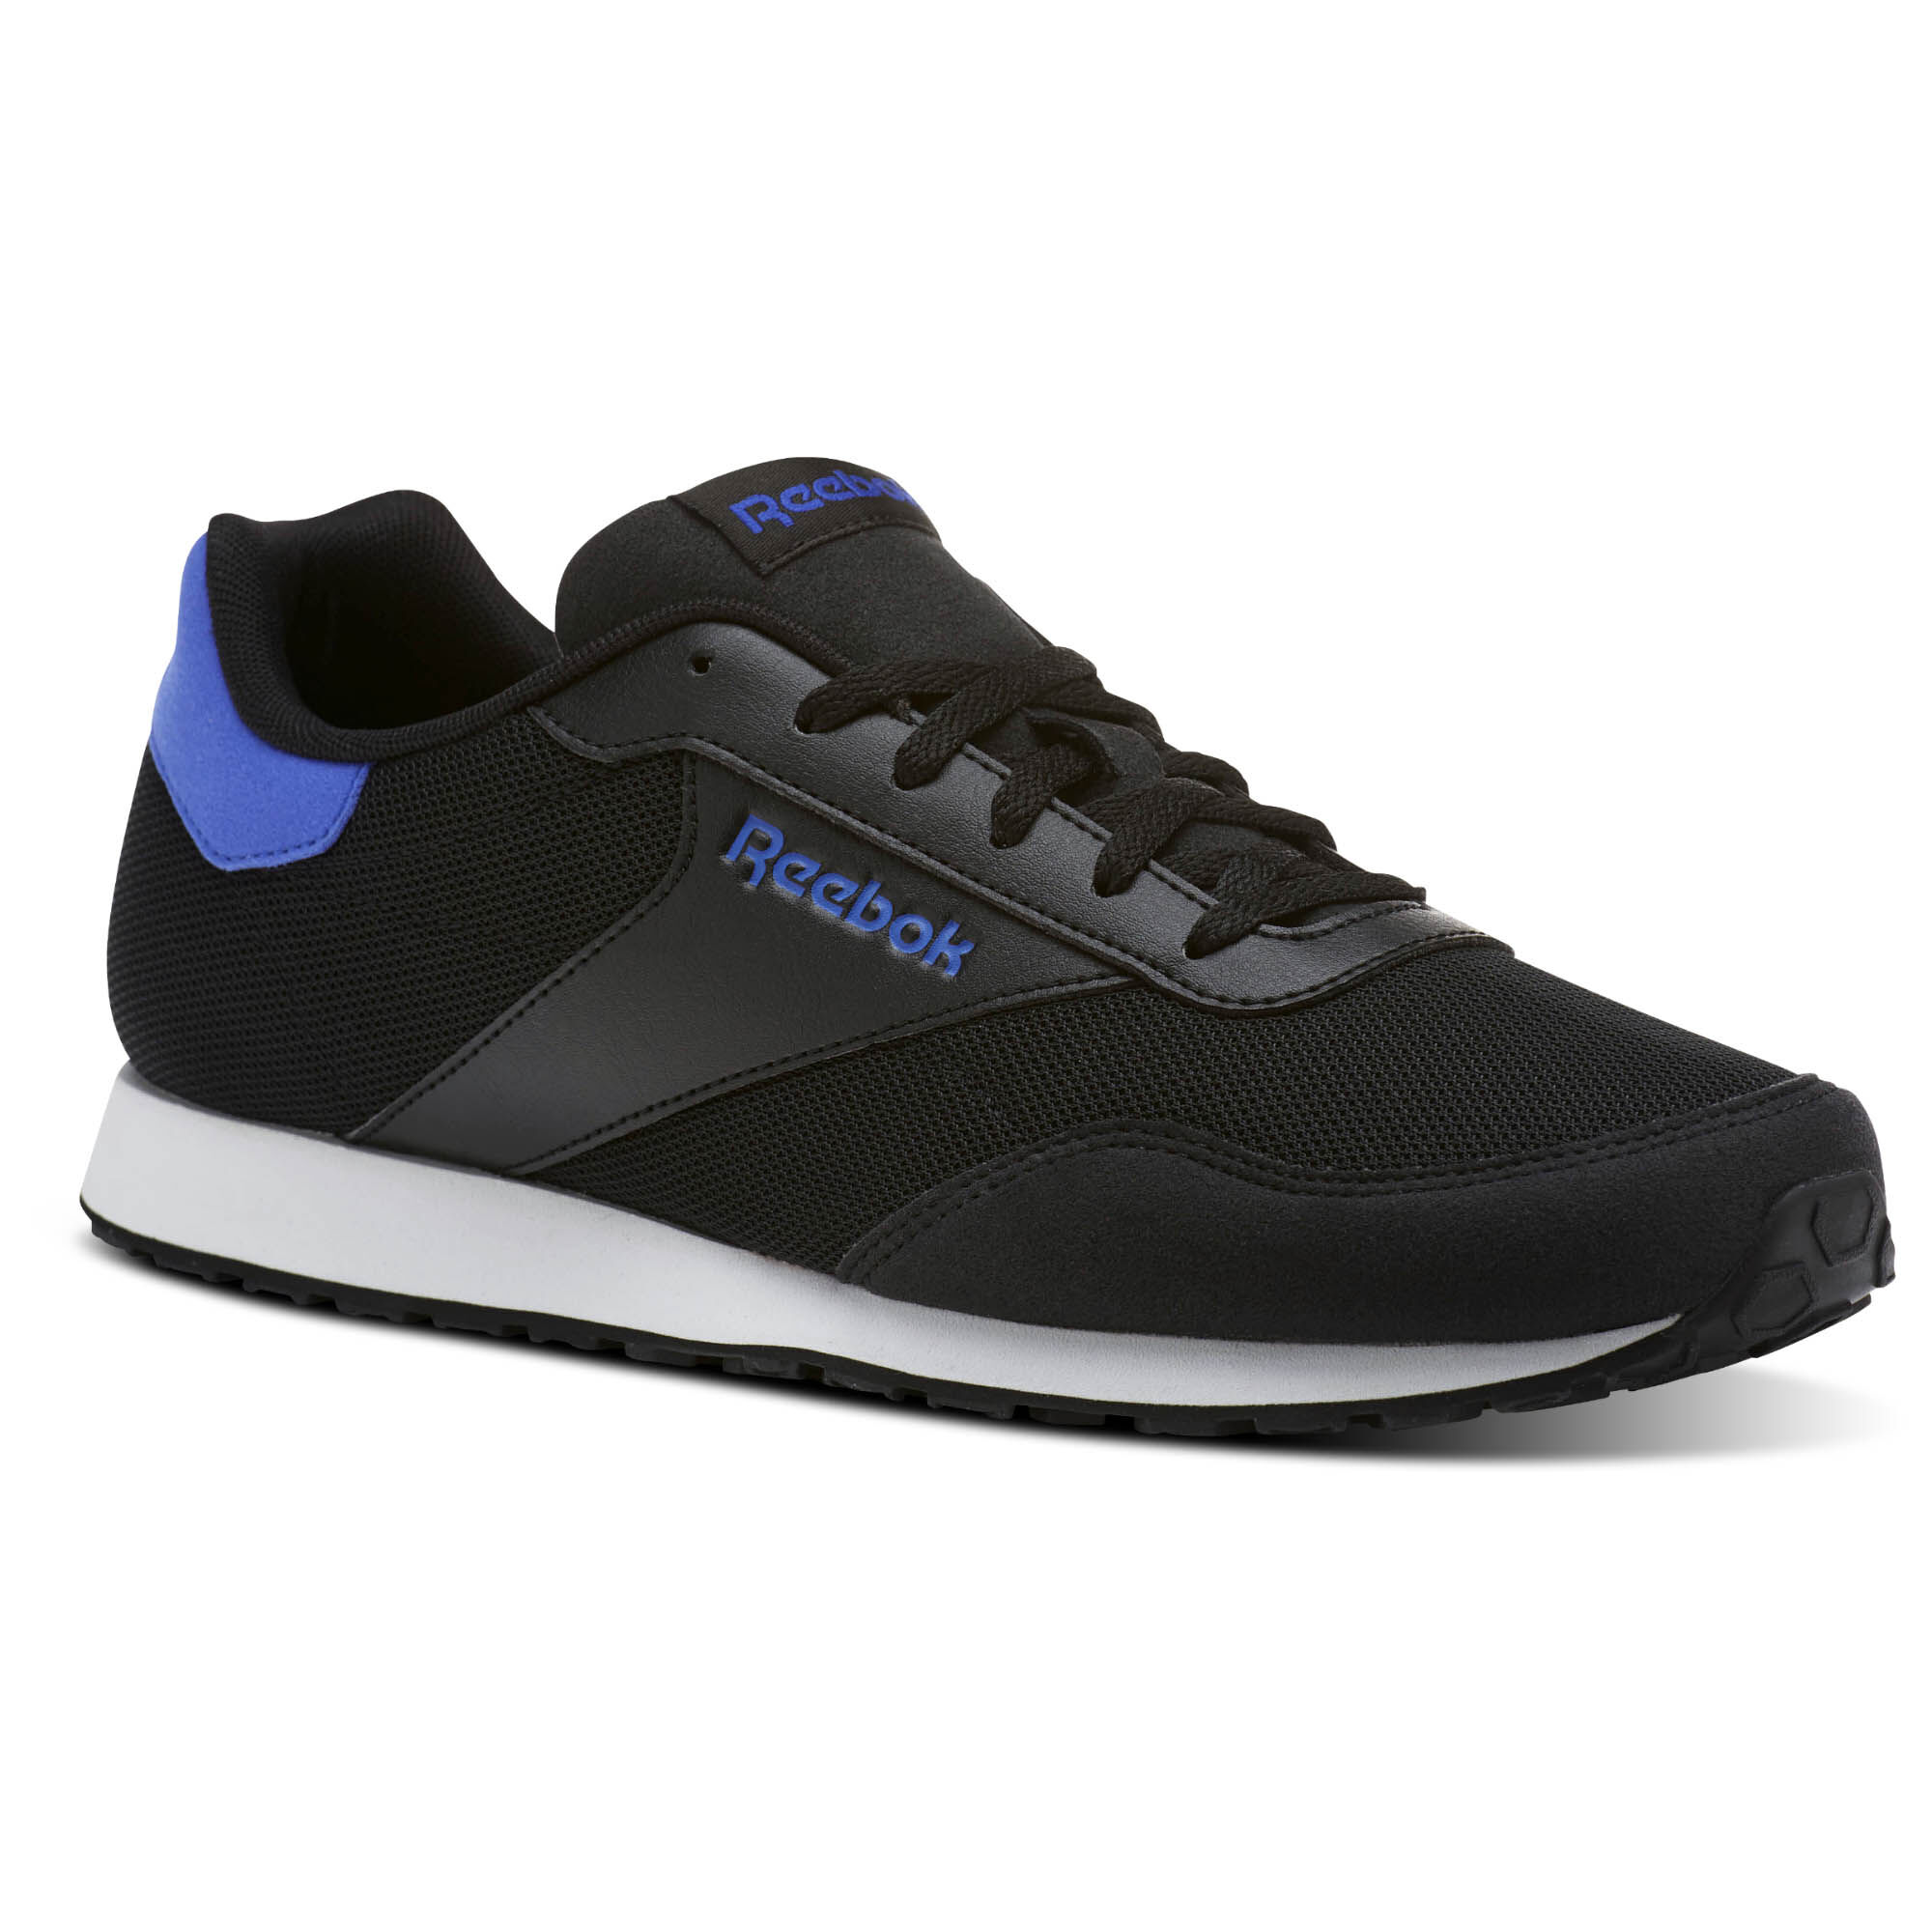 Reebok - Reebok Royal Dimension Black/Acid Blue/White CM9730